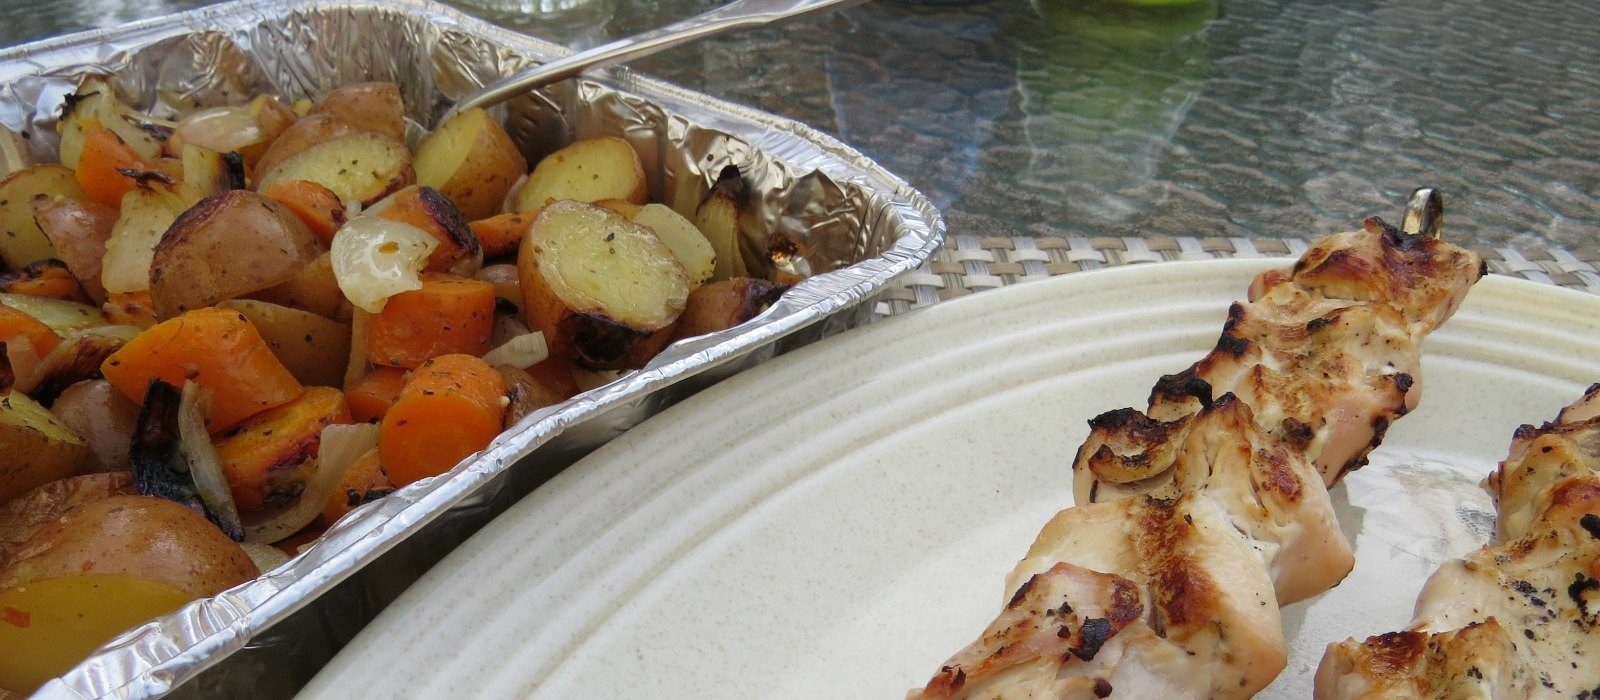 My Favourite Quick and Easy Summer BBQ Meal